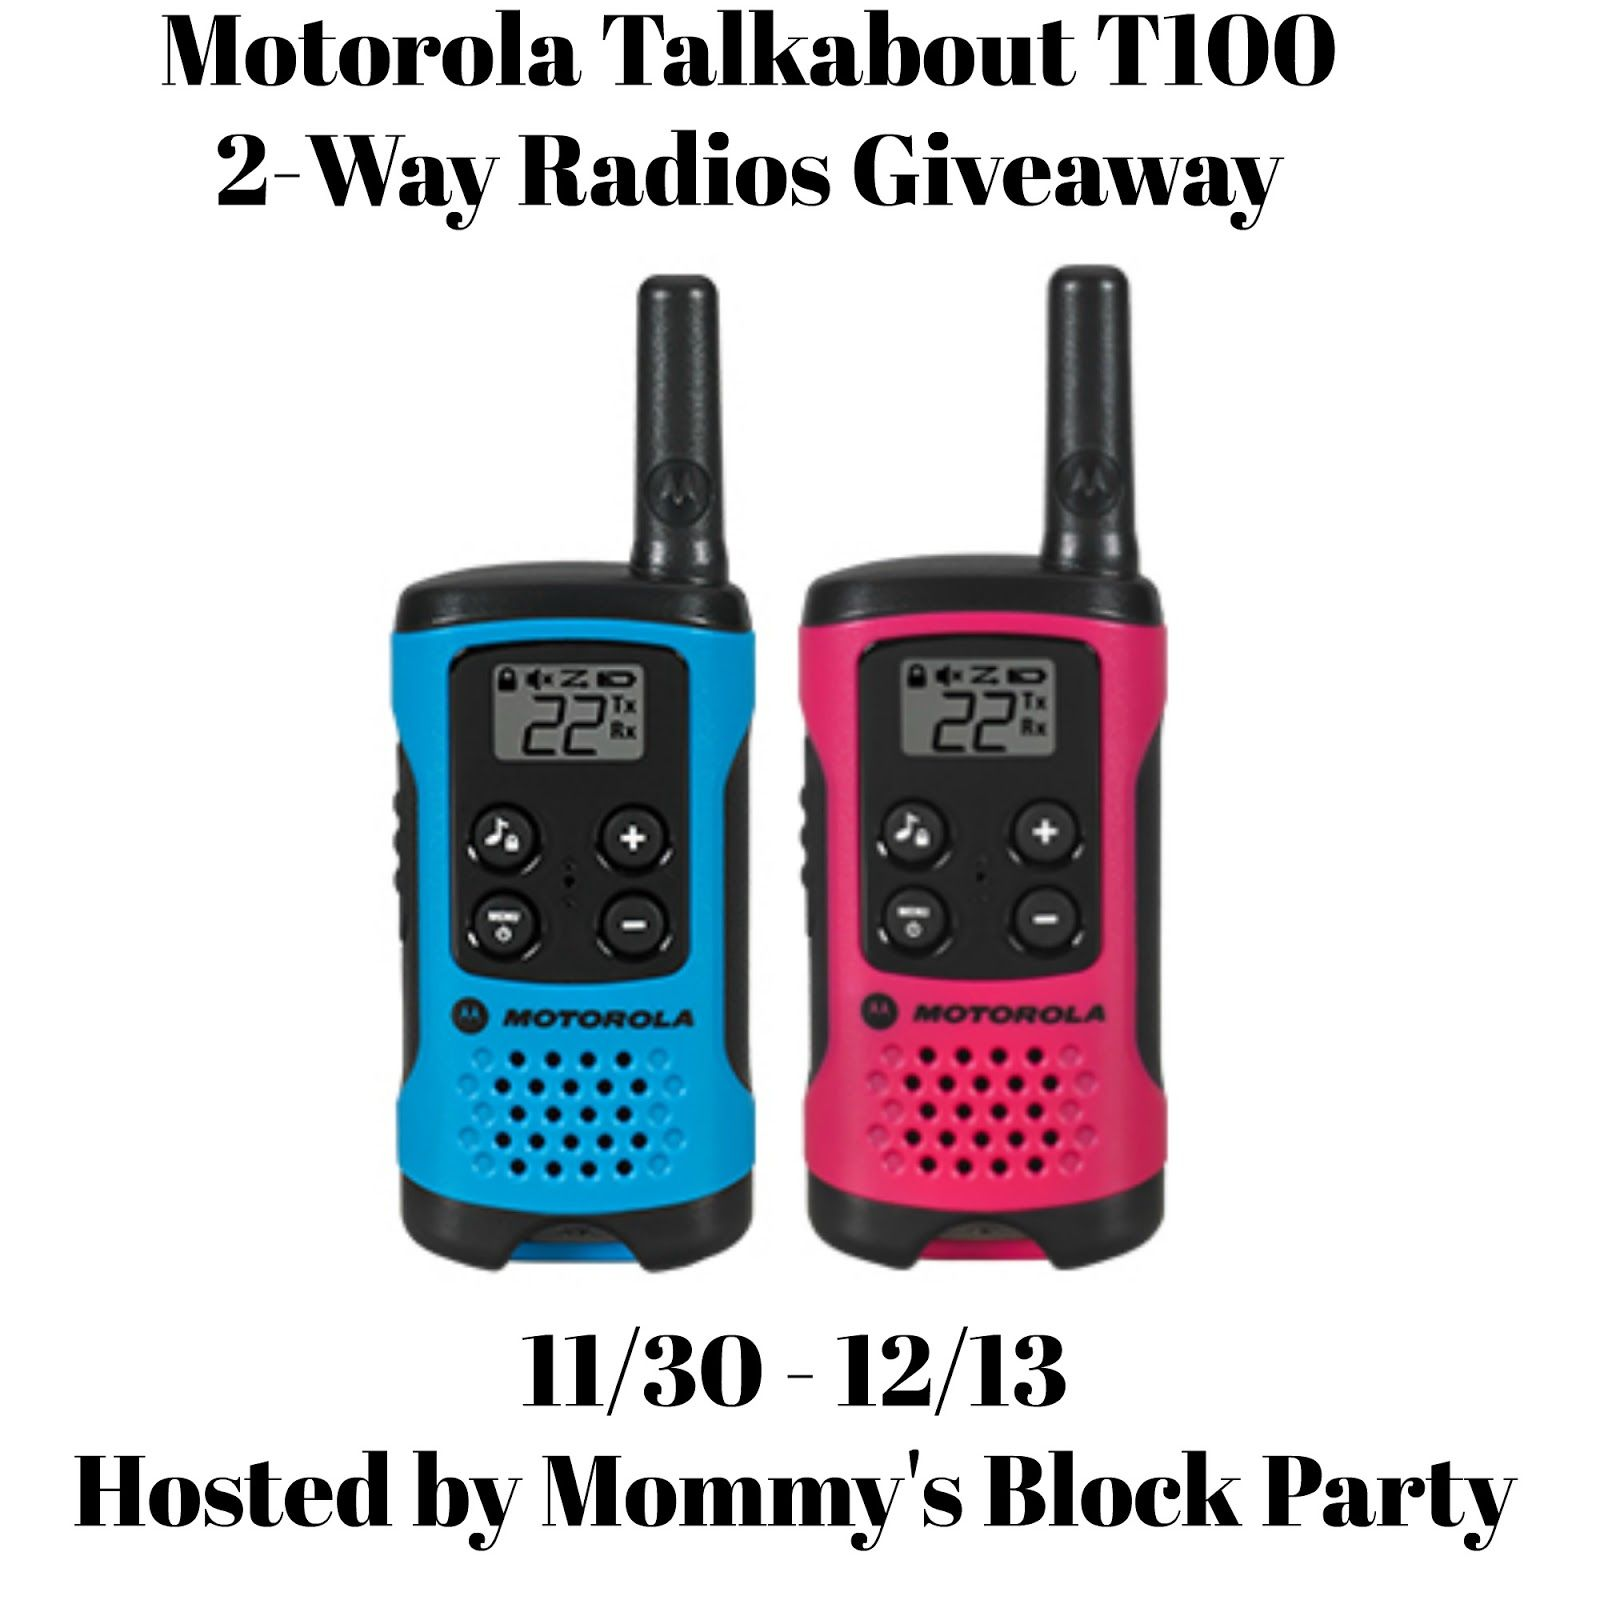 Stay in Touch with the Motorola Talkabout T100 2-Way Radios